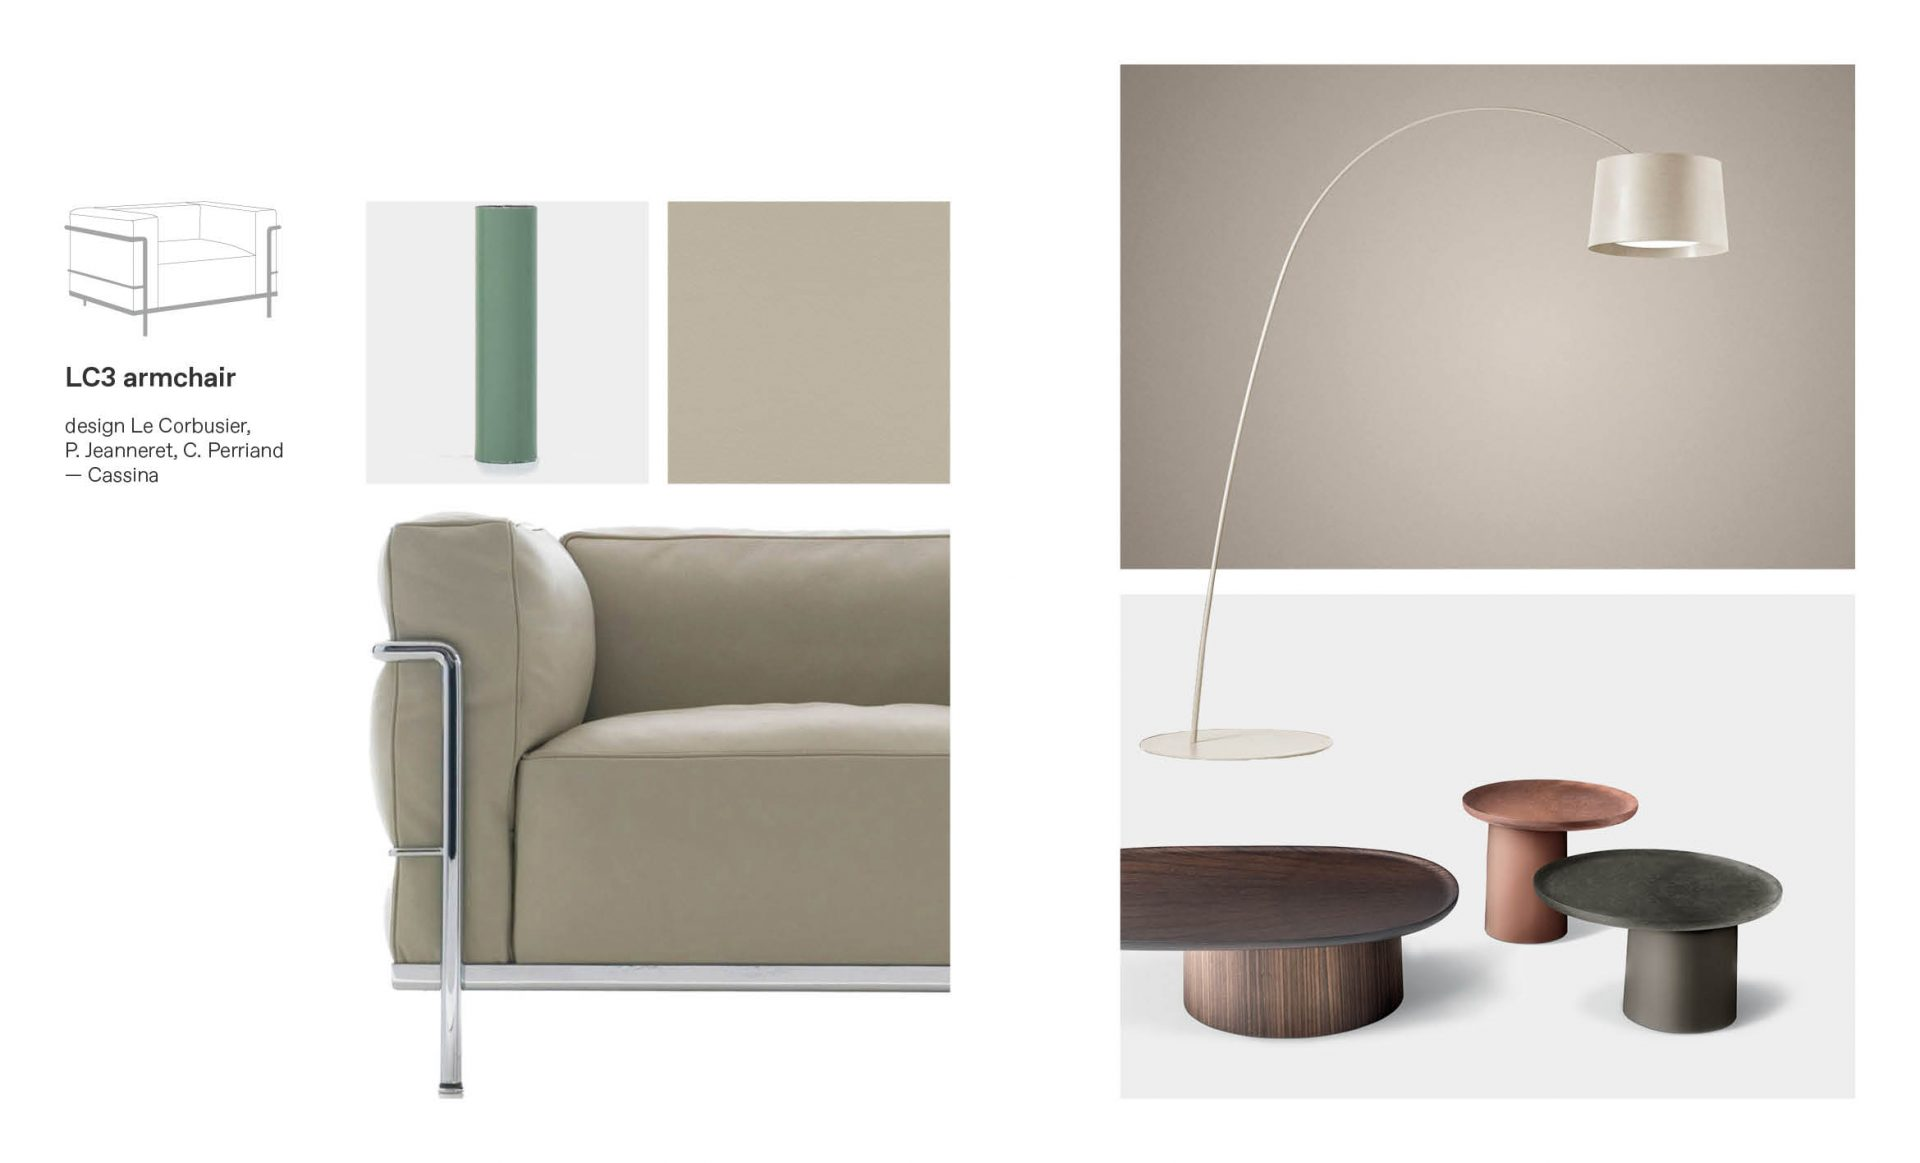 LC3 Cassina armchair moodboard composition